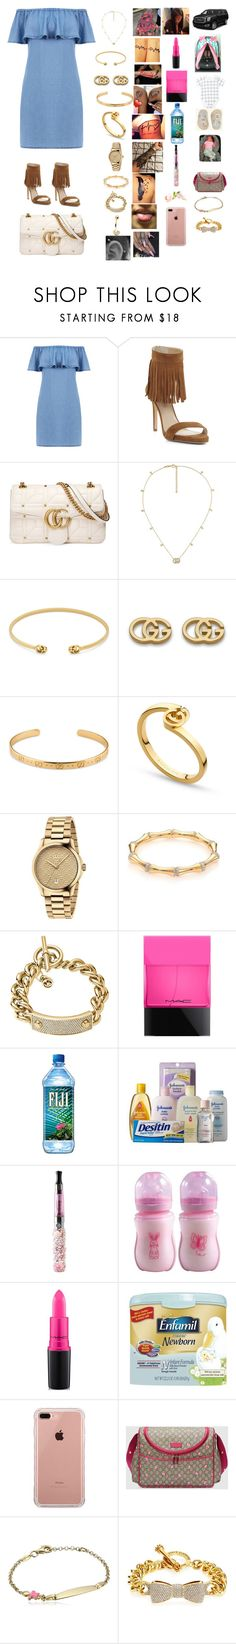 """""""Day out with my baby girl 😍💕"""" by manija-jones on Polyvore featuring Warehouse, BCBGMAXAZRIA, Gucci, Michael Kors, MAC Cosmetics, Johnson's Baby, Belkin, Philips and Juicy Couture"""